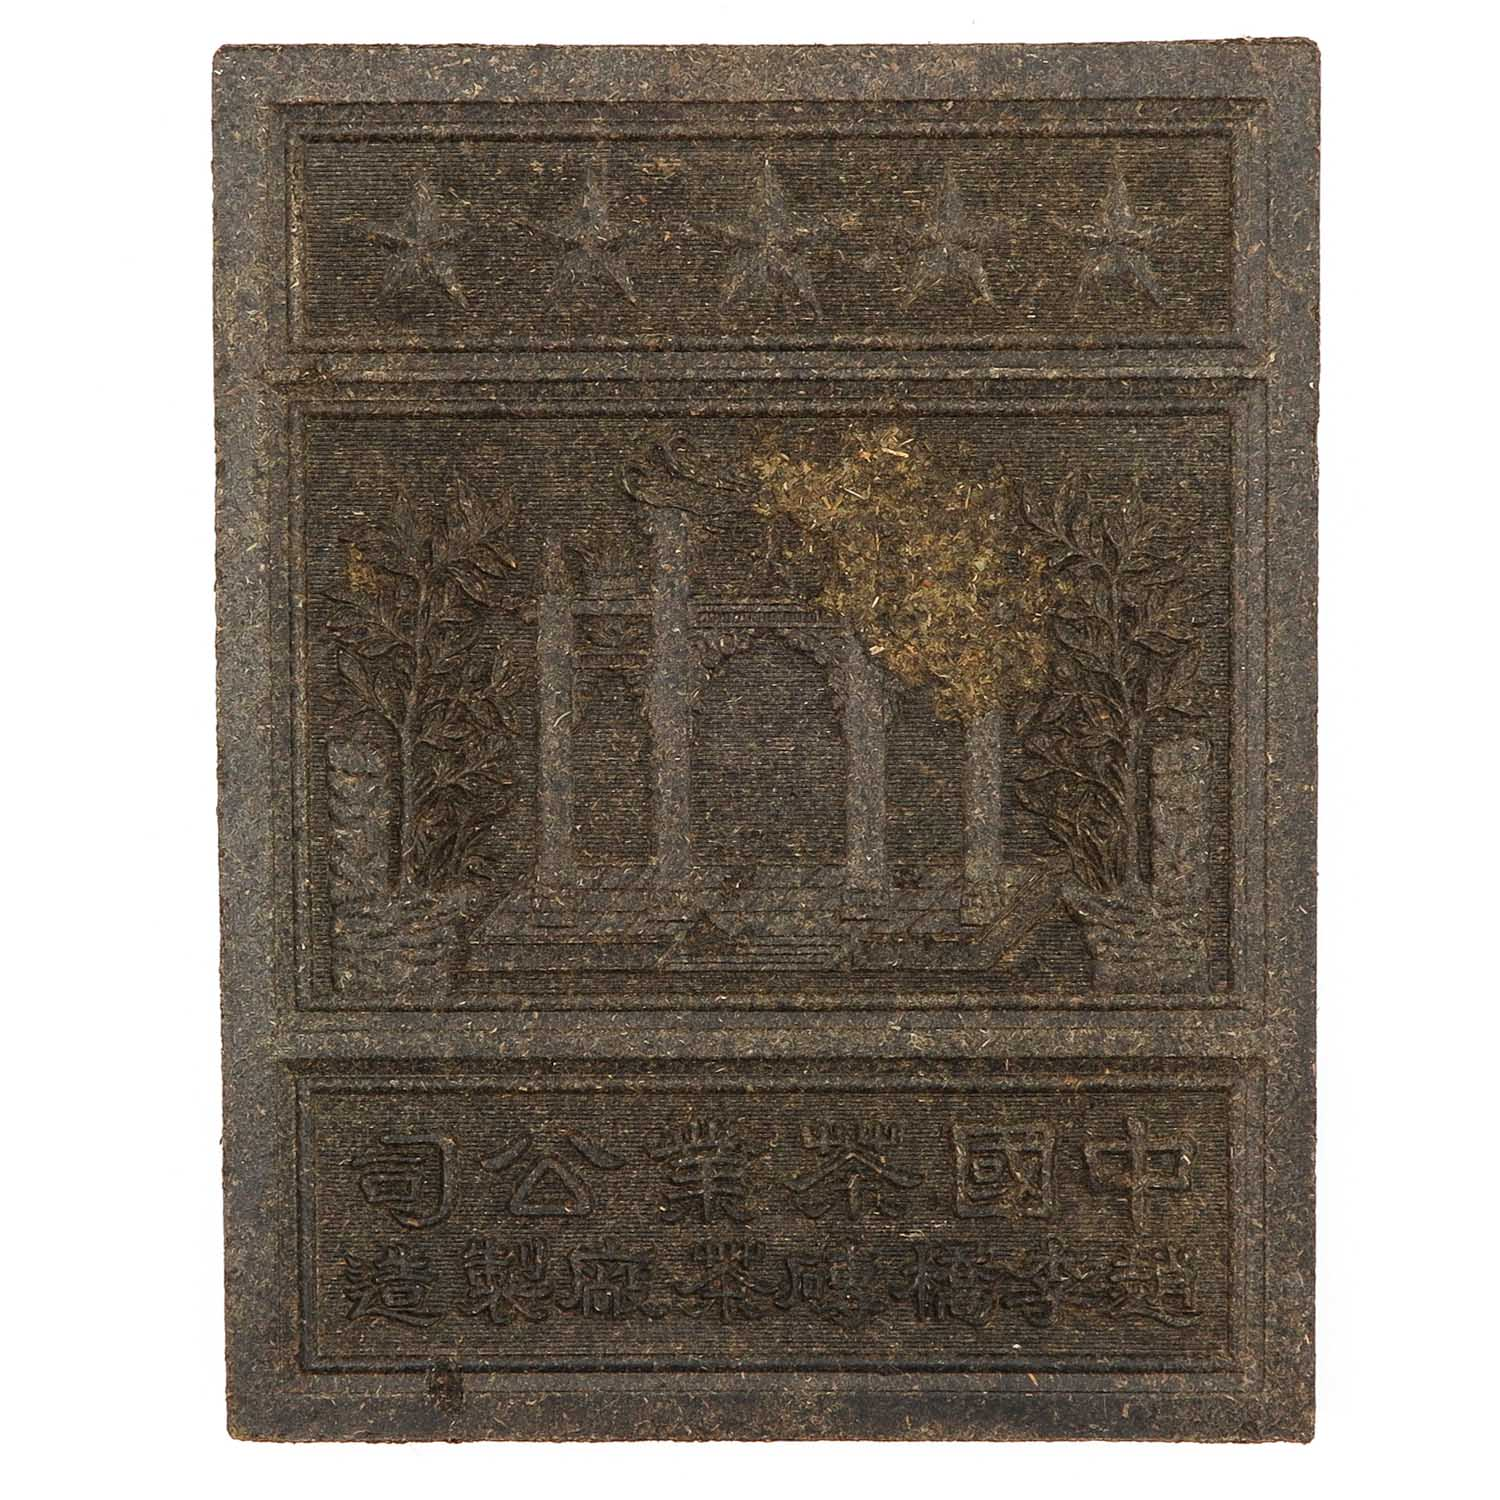 A Collection of 3 Tea Tiles - Image 3 of 10